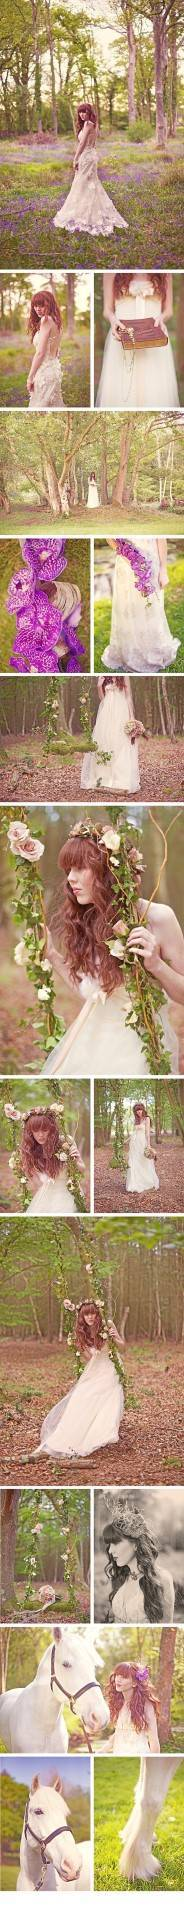 Enchanted Woodland Styled Shoot {Sarah Gawler Photography}